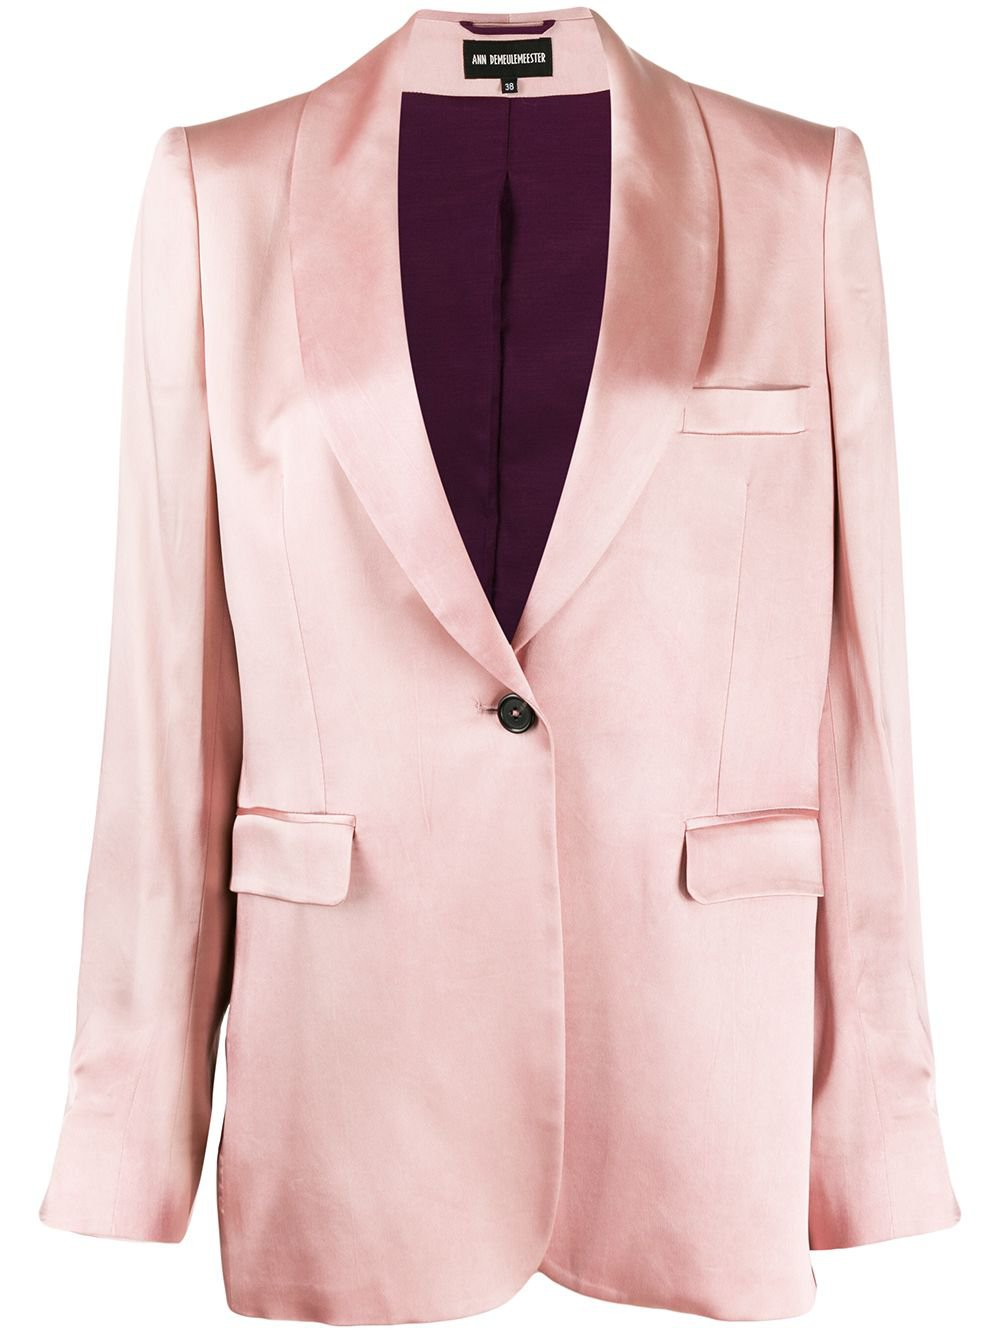 Ann Demeulemeester Single Breasted Blazer - Farfetch